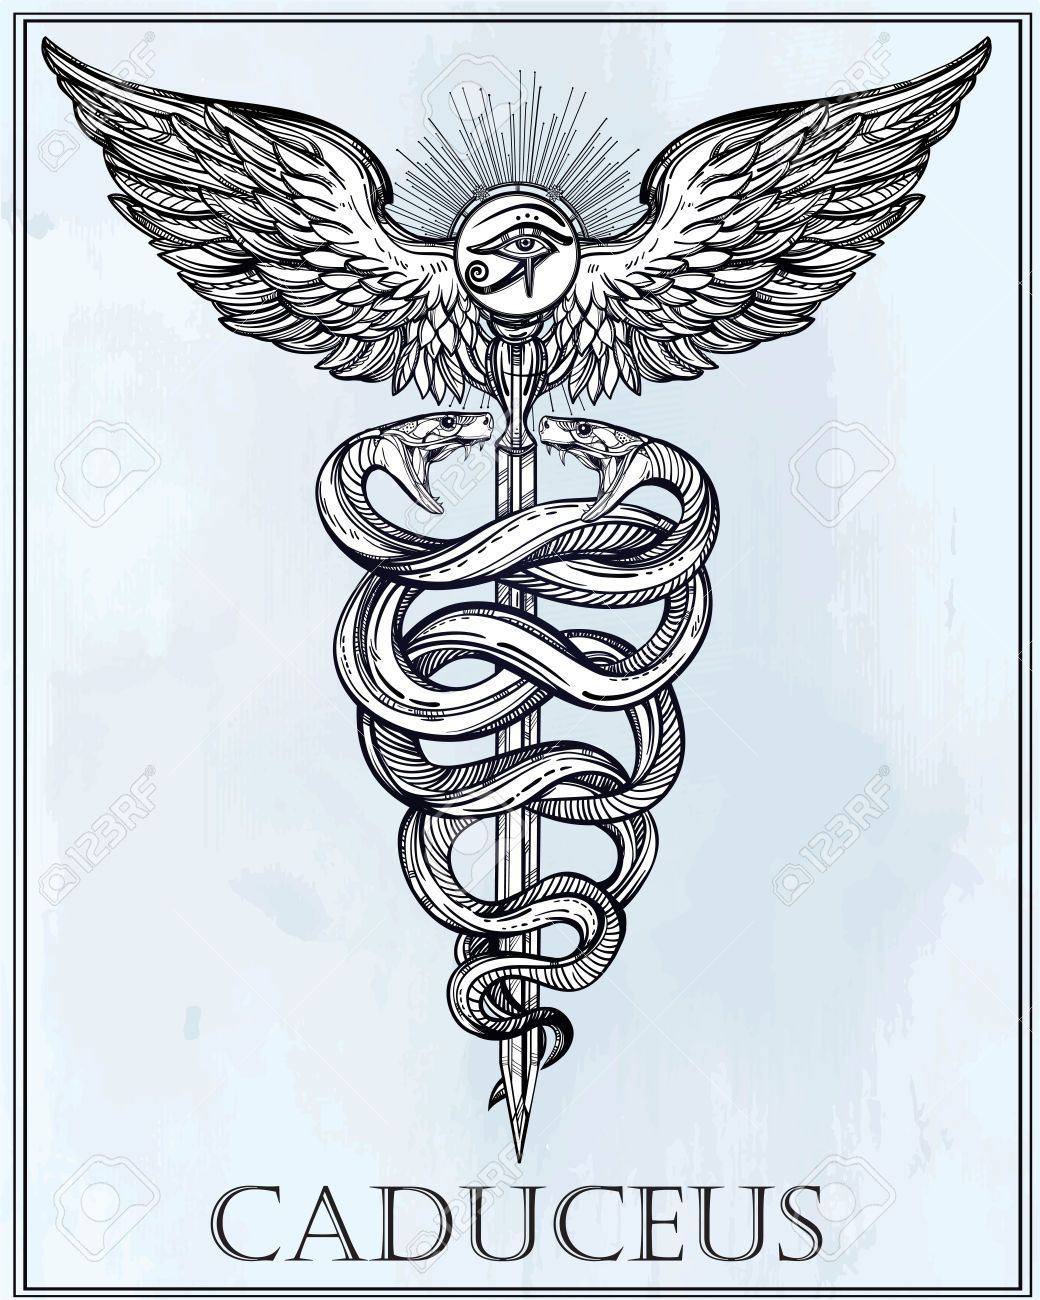 Caduceus (Staff) | JTI\u0027s Contract (The Cube) | Pinterest | Tattoo